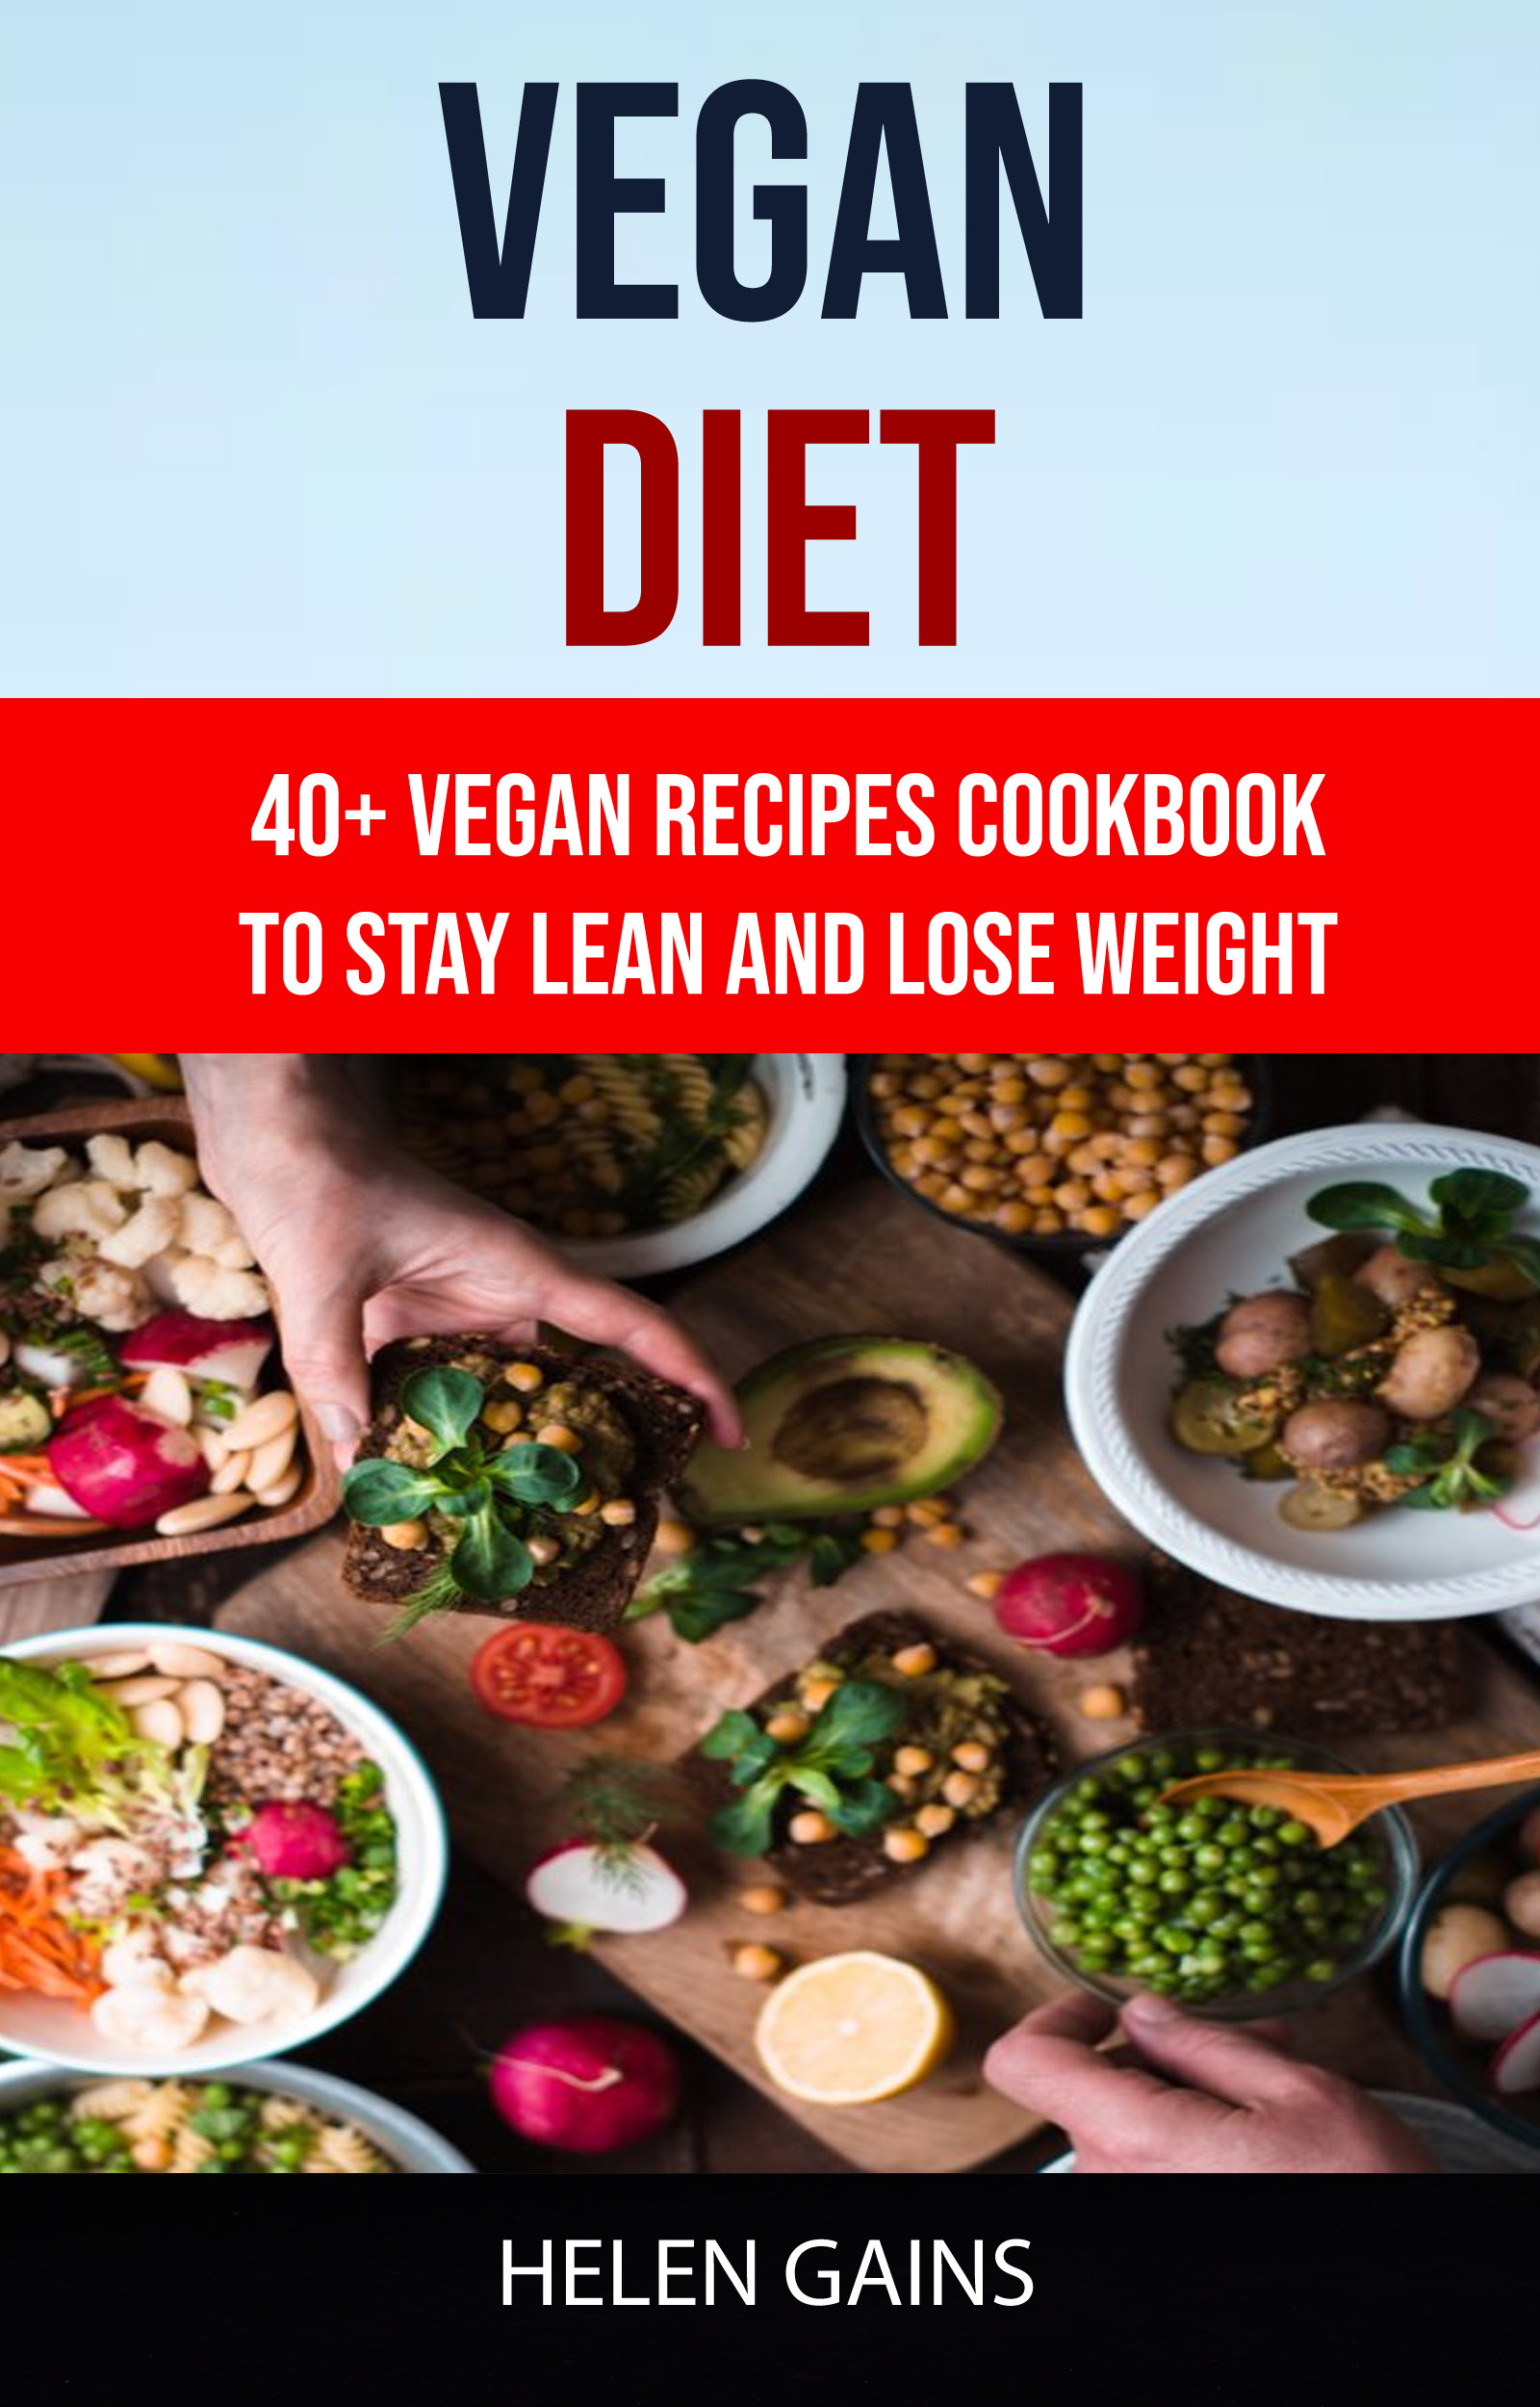 Vegan diet: 40+ vegan recipes cookbook to stay lean and lose weight